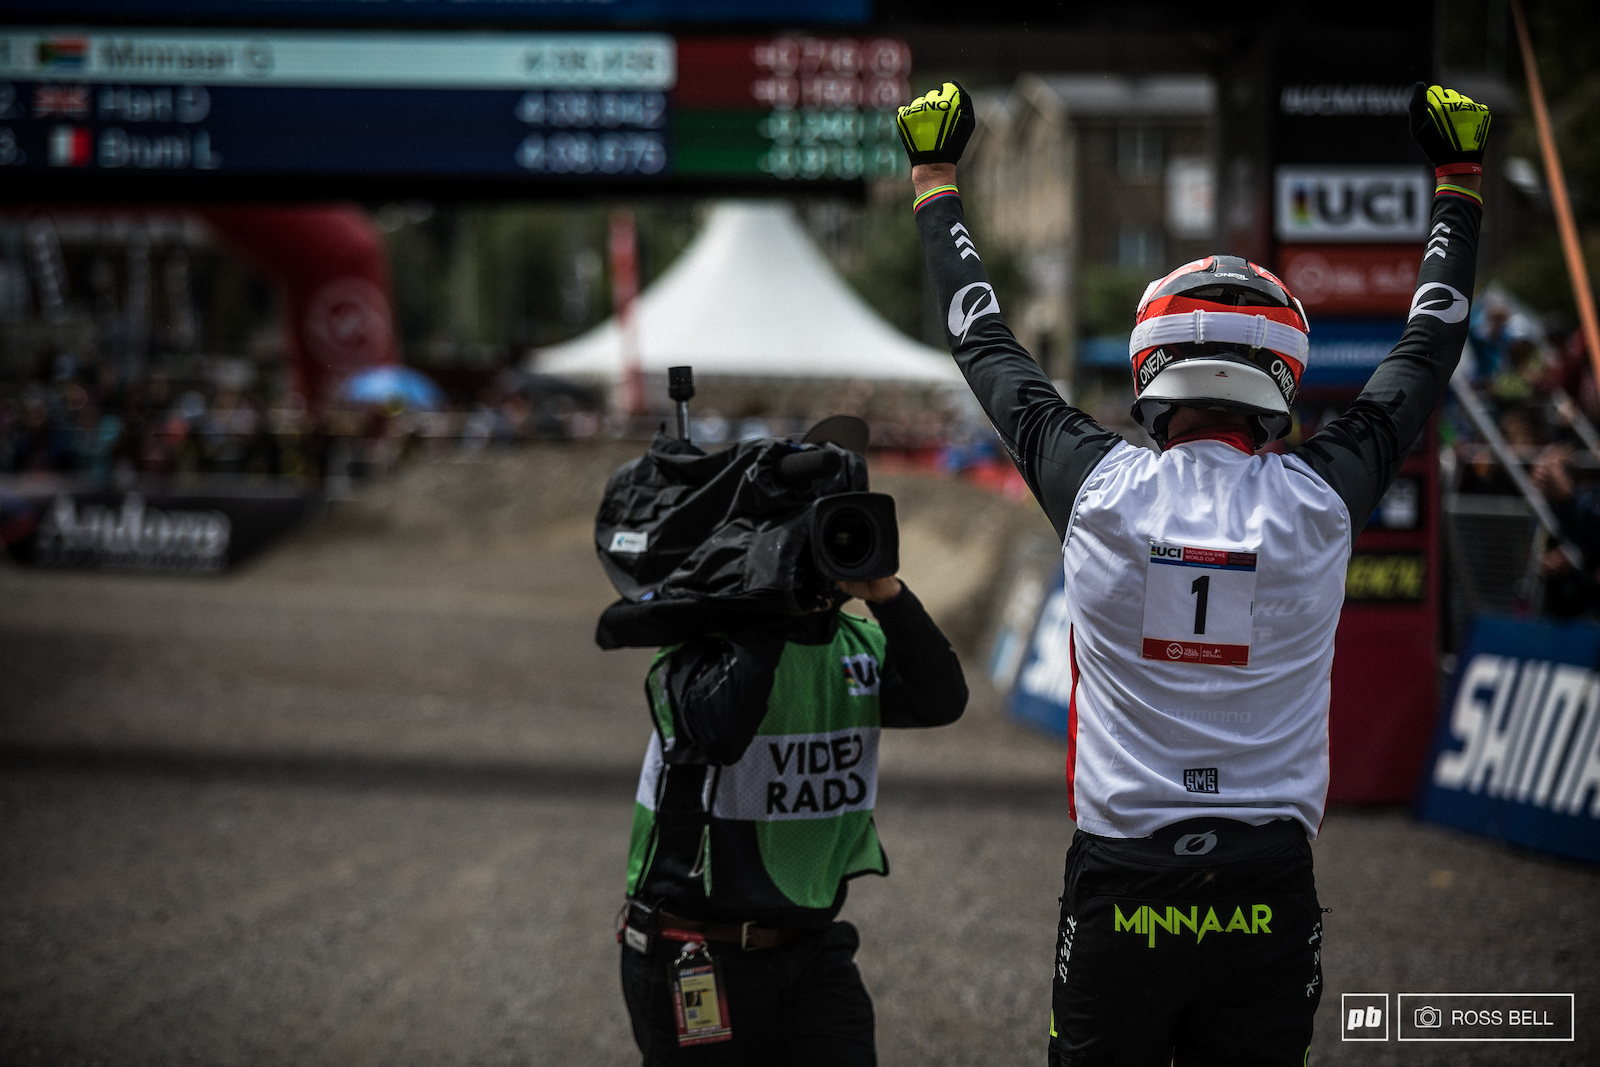 It looked like Greg Minnaar had it in the bag and judging by his reaction he thought so too.